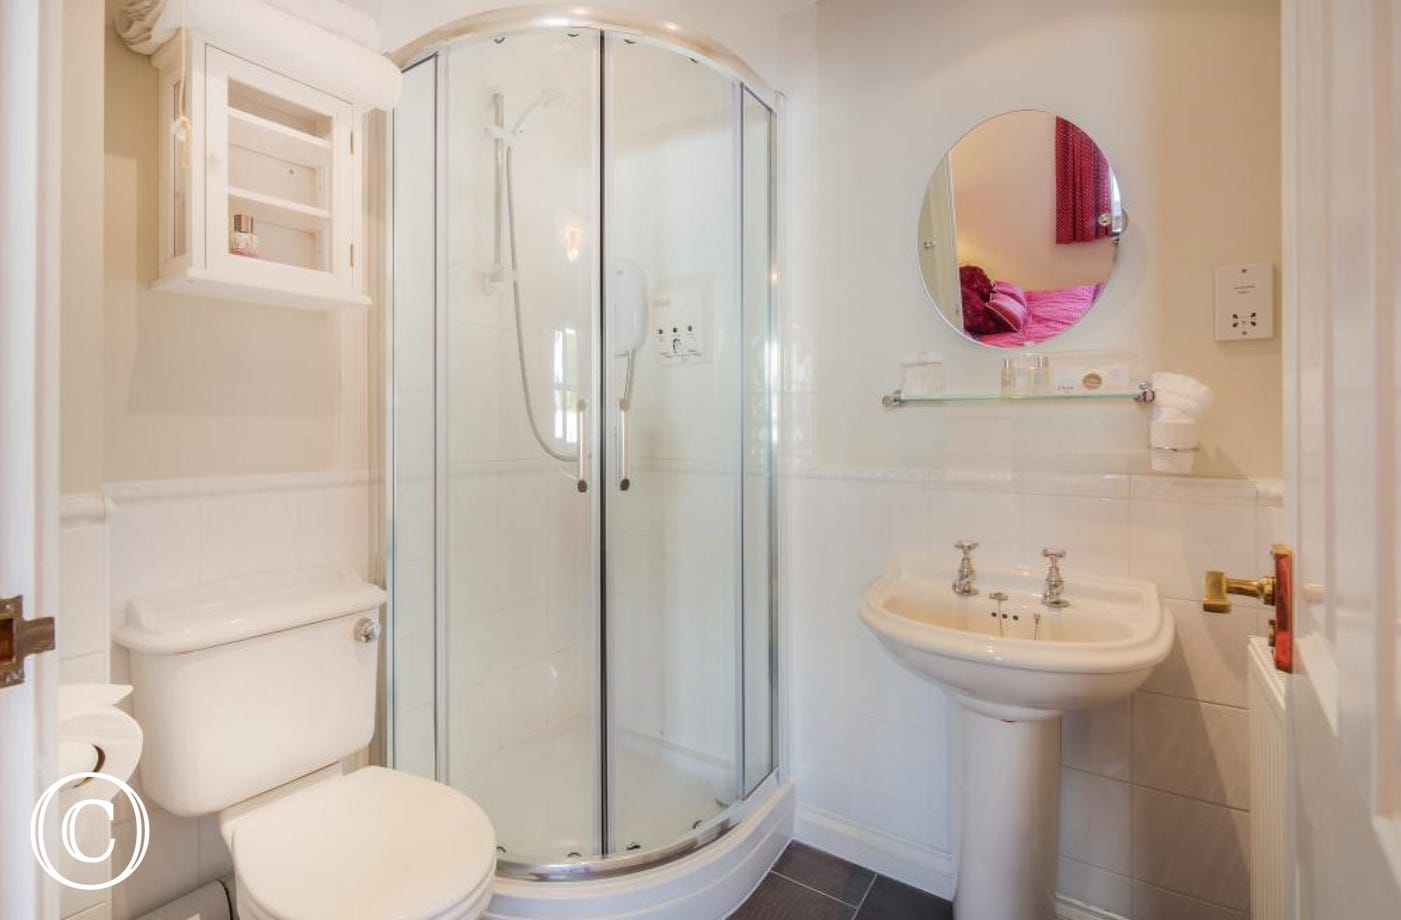 En-Suite Shower Room - Beach Mews in Torquay is packed with excellent facilities